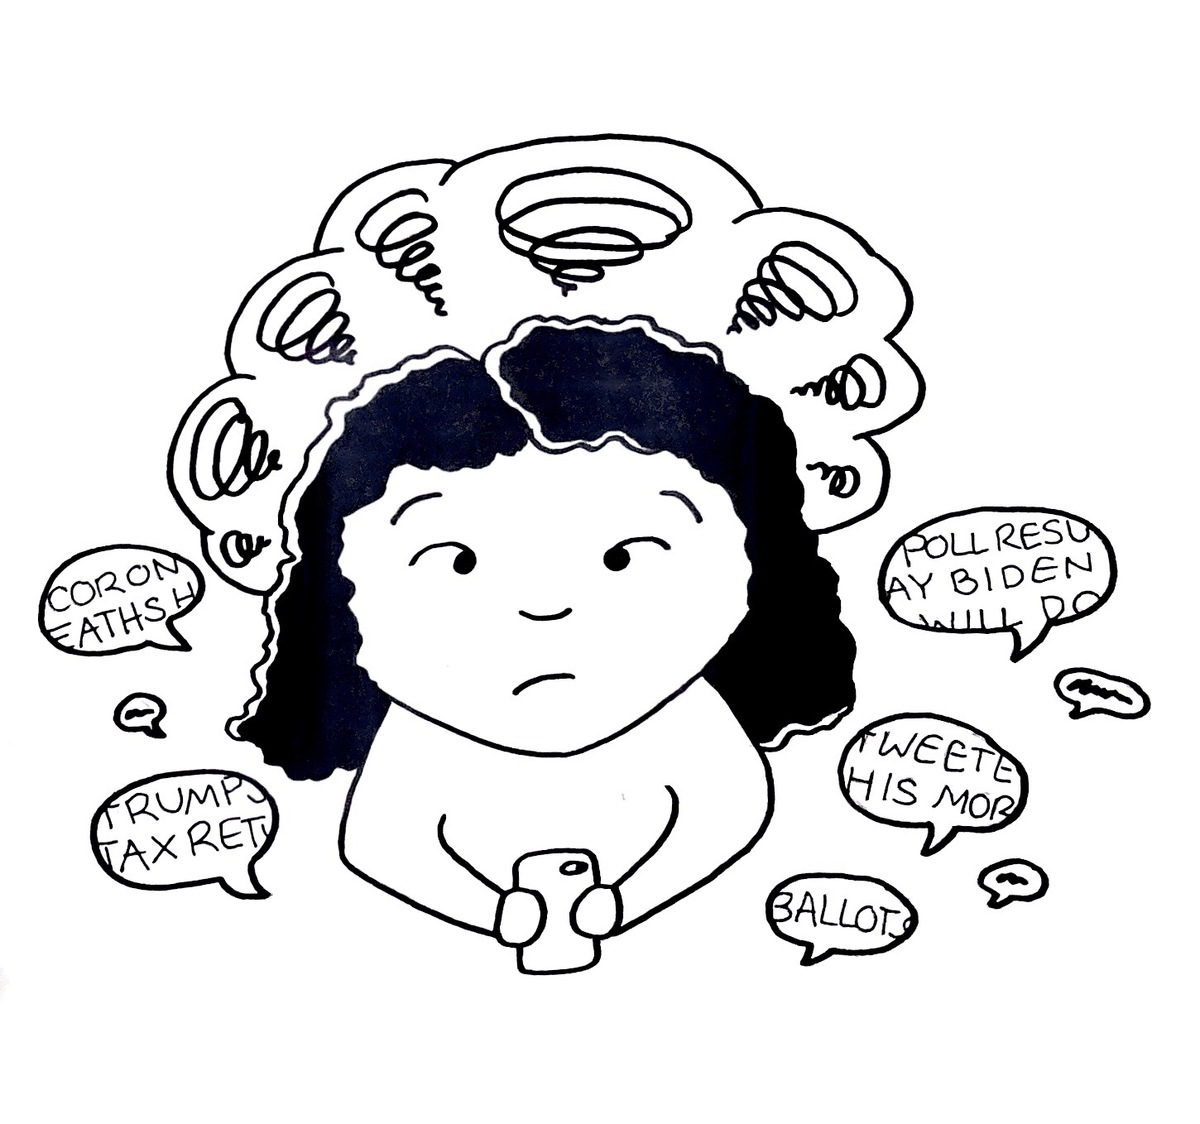 Woman looking anxious with speech bubbles surrounding her